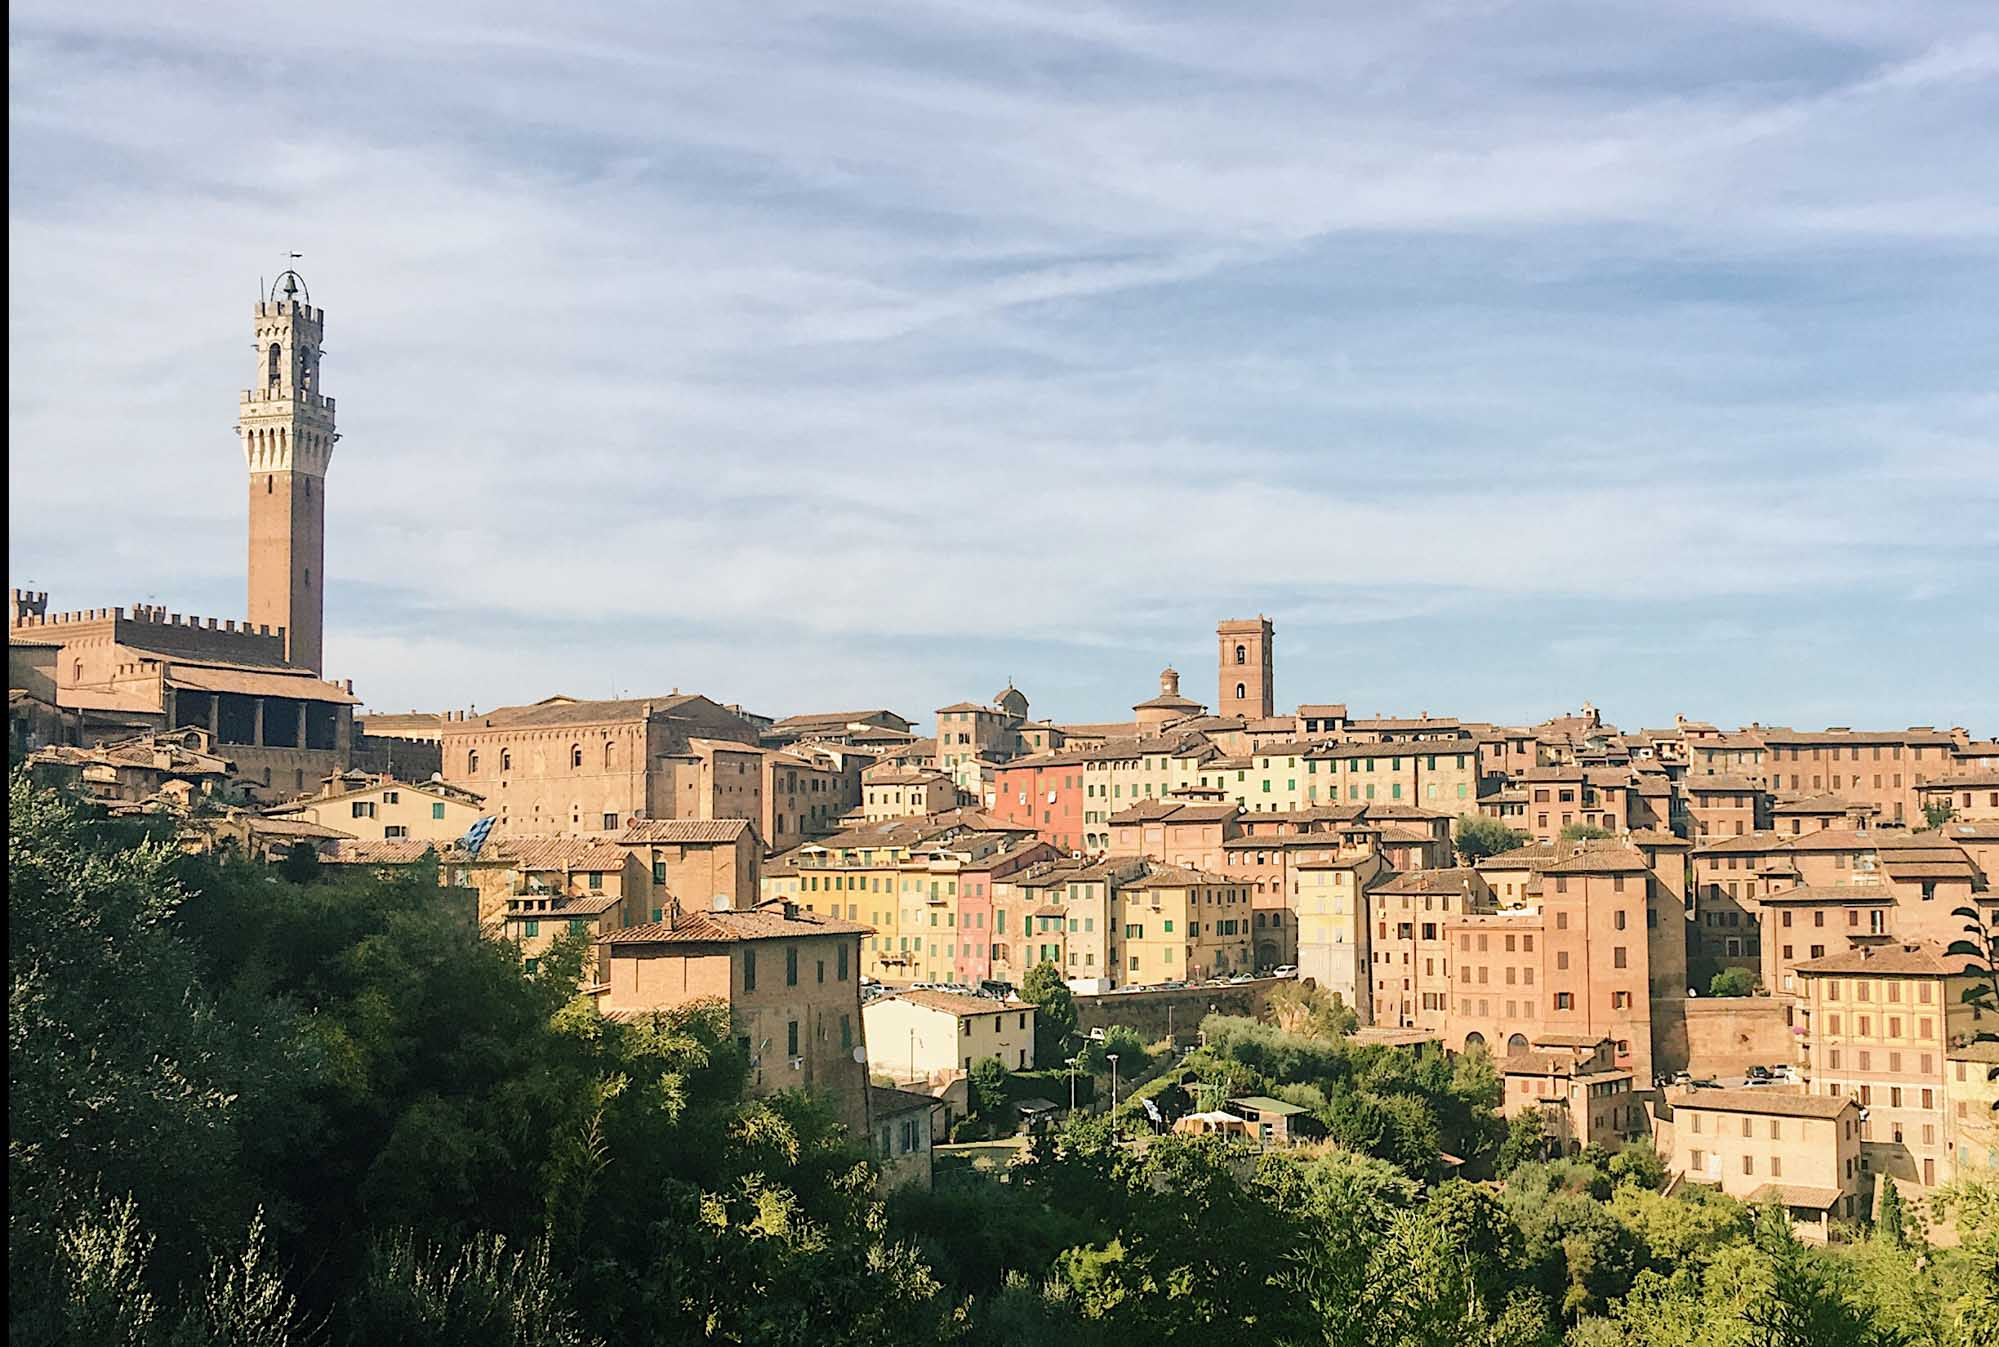 Road trip in Italy itinerary - Siena